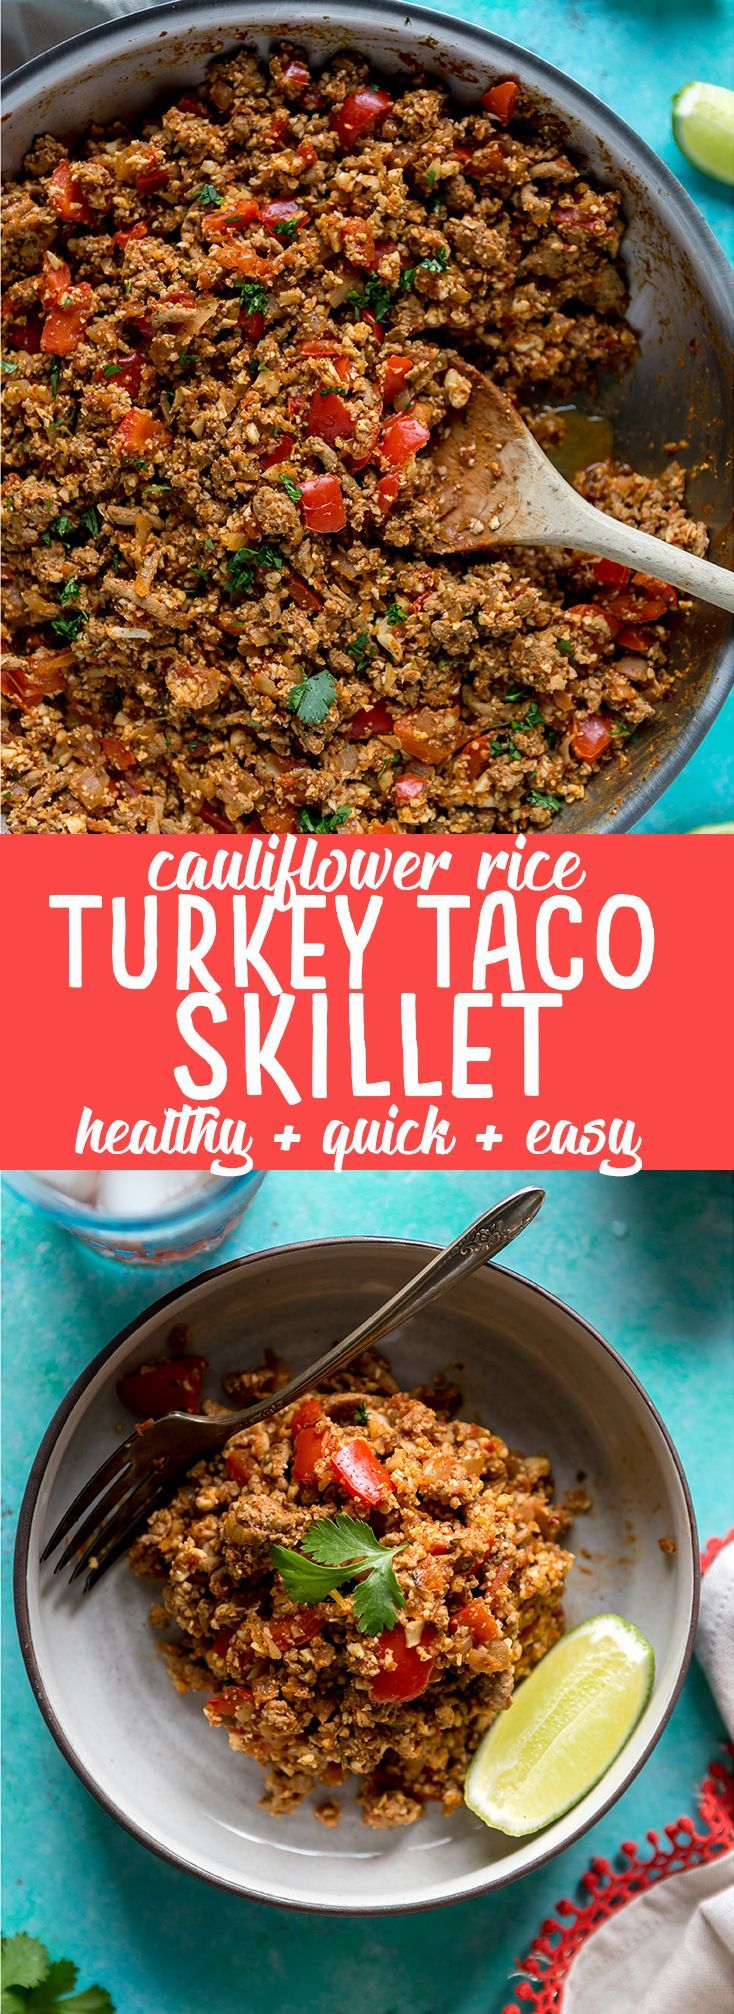 This Healthy Cauliflower Rice Turkey Taco Skillet is a quick and healthy low carb dinner. An easy way to sneak in extra veggies but packed with flavor! | Mexican cauliflower rice recipe | Healthy dinner recipe | Low carb cauliflower rice recipe | Easy cauliflower rice dinner recipe | Quick dinner recipe | Quick and healthy dinner ideas | One pot | paleo | whole 30 | ground turkey recipe | low calorie dinner recipe